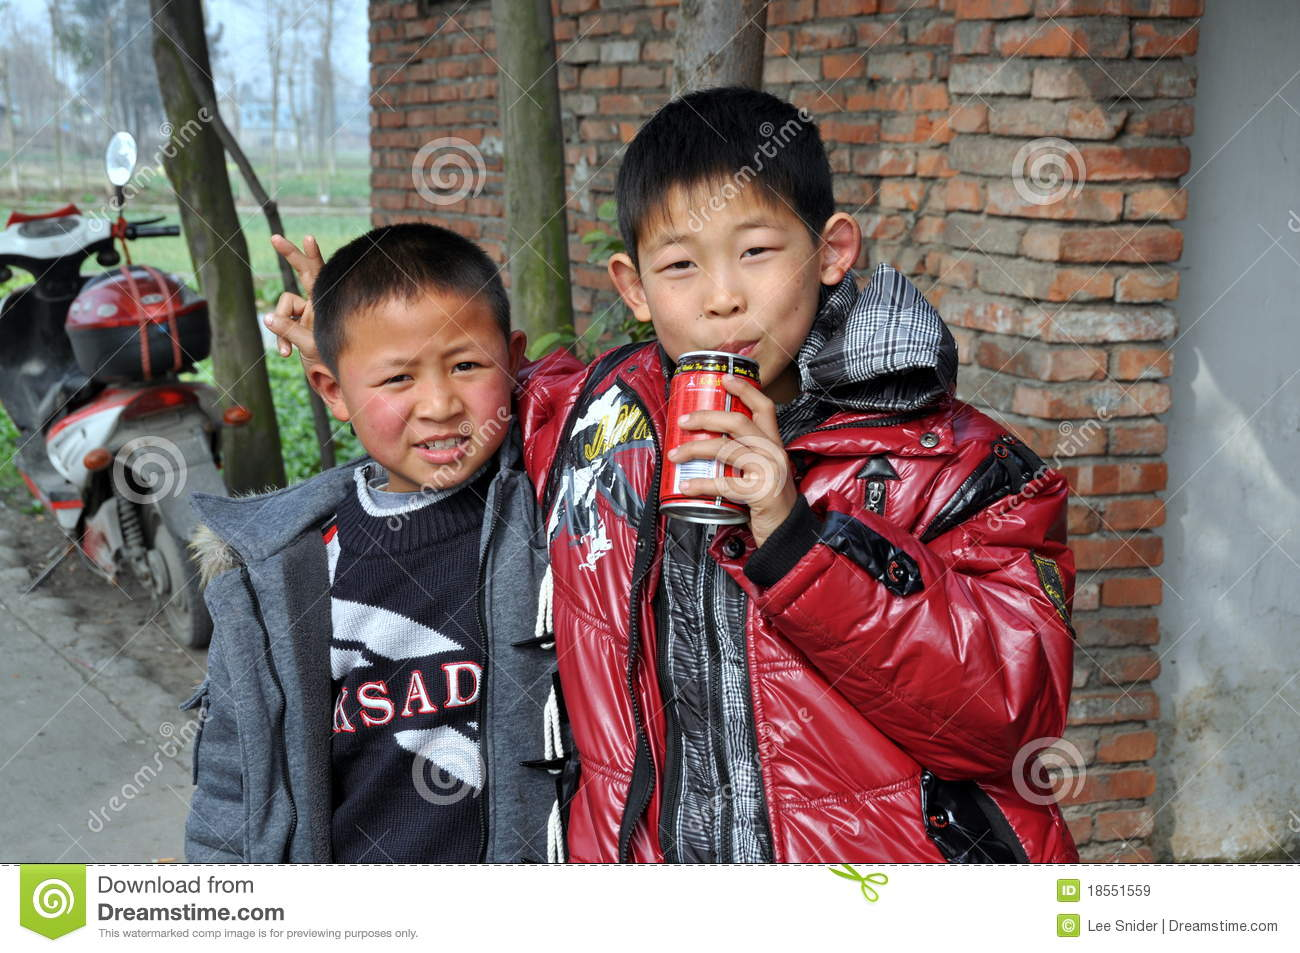 Bois En Chaene - Pengzhou China Two Little Boys Editorial Stock Image Image [mjhdah]http://c8.alamy.com/comp/F6406A/jiu-chi-town-china-three-young-chinese-boys-in-their-bathing-suits-F6406A.jpg